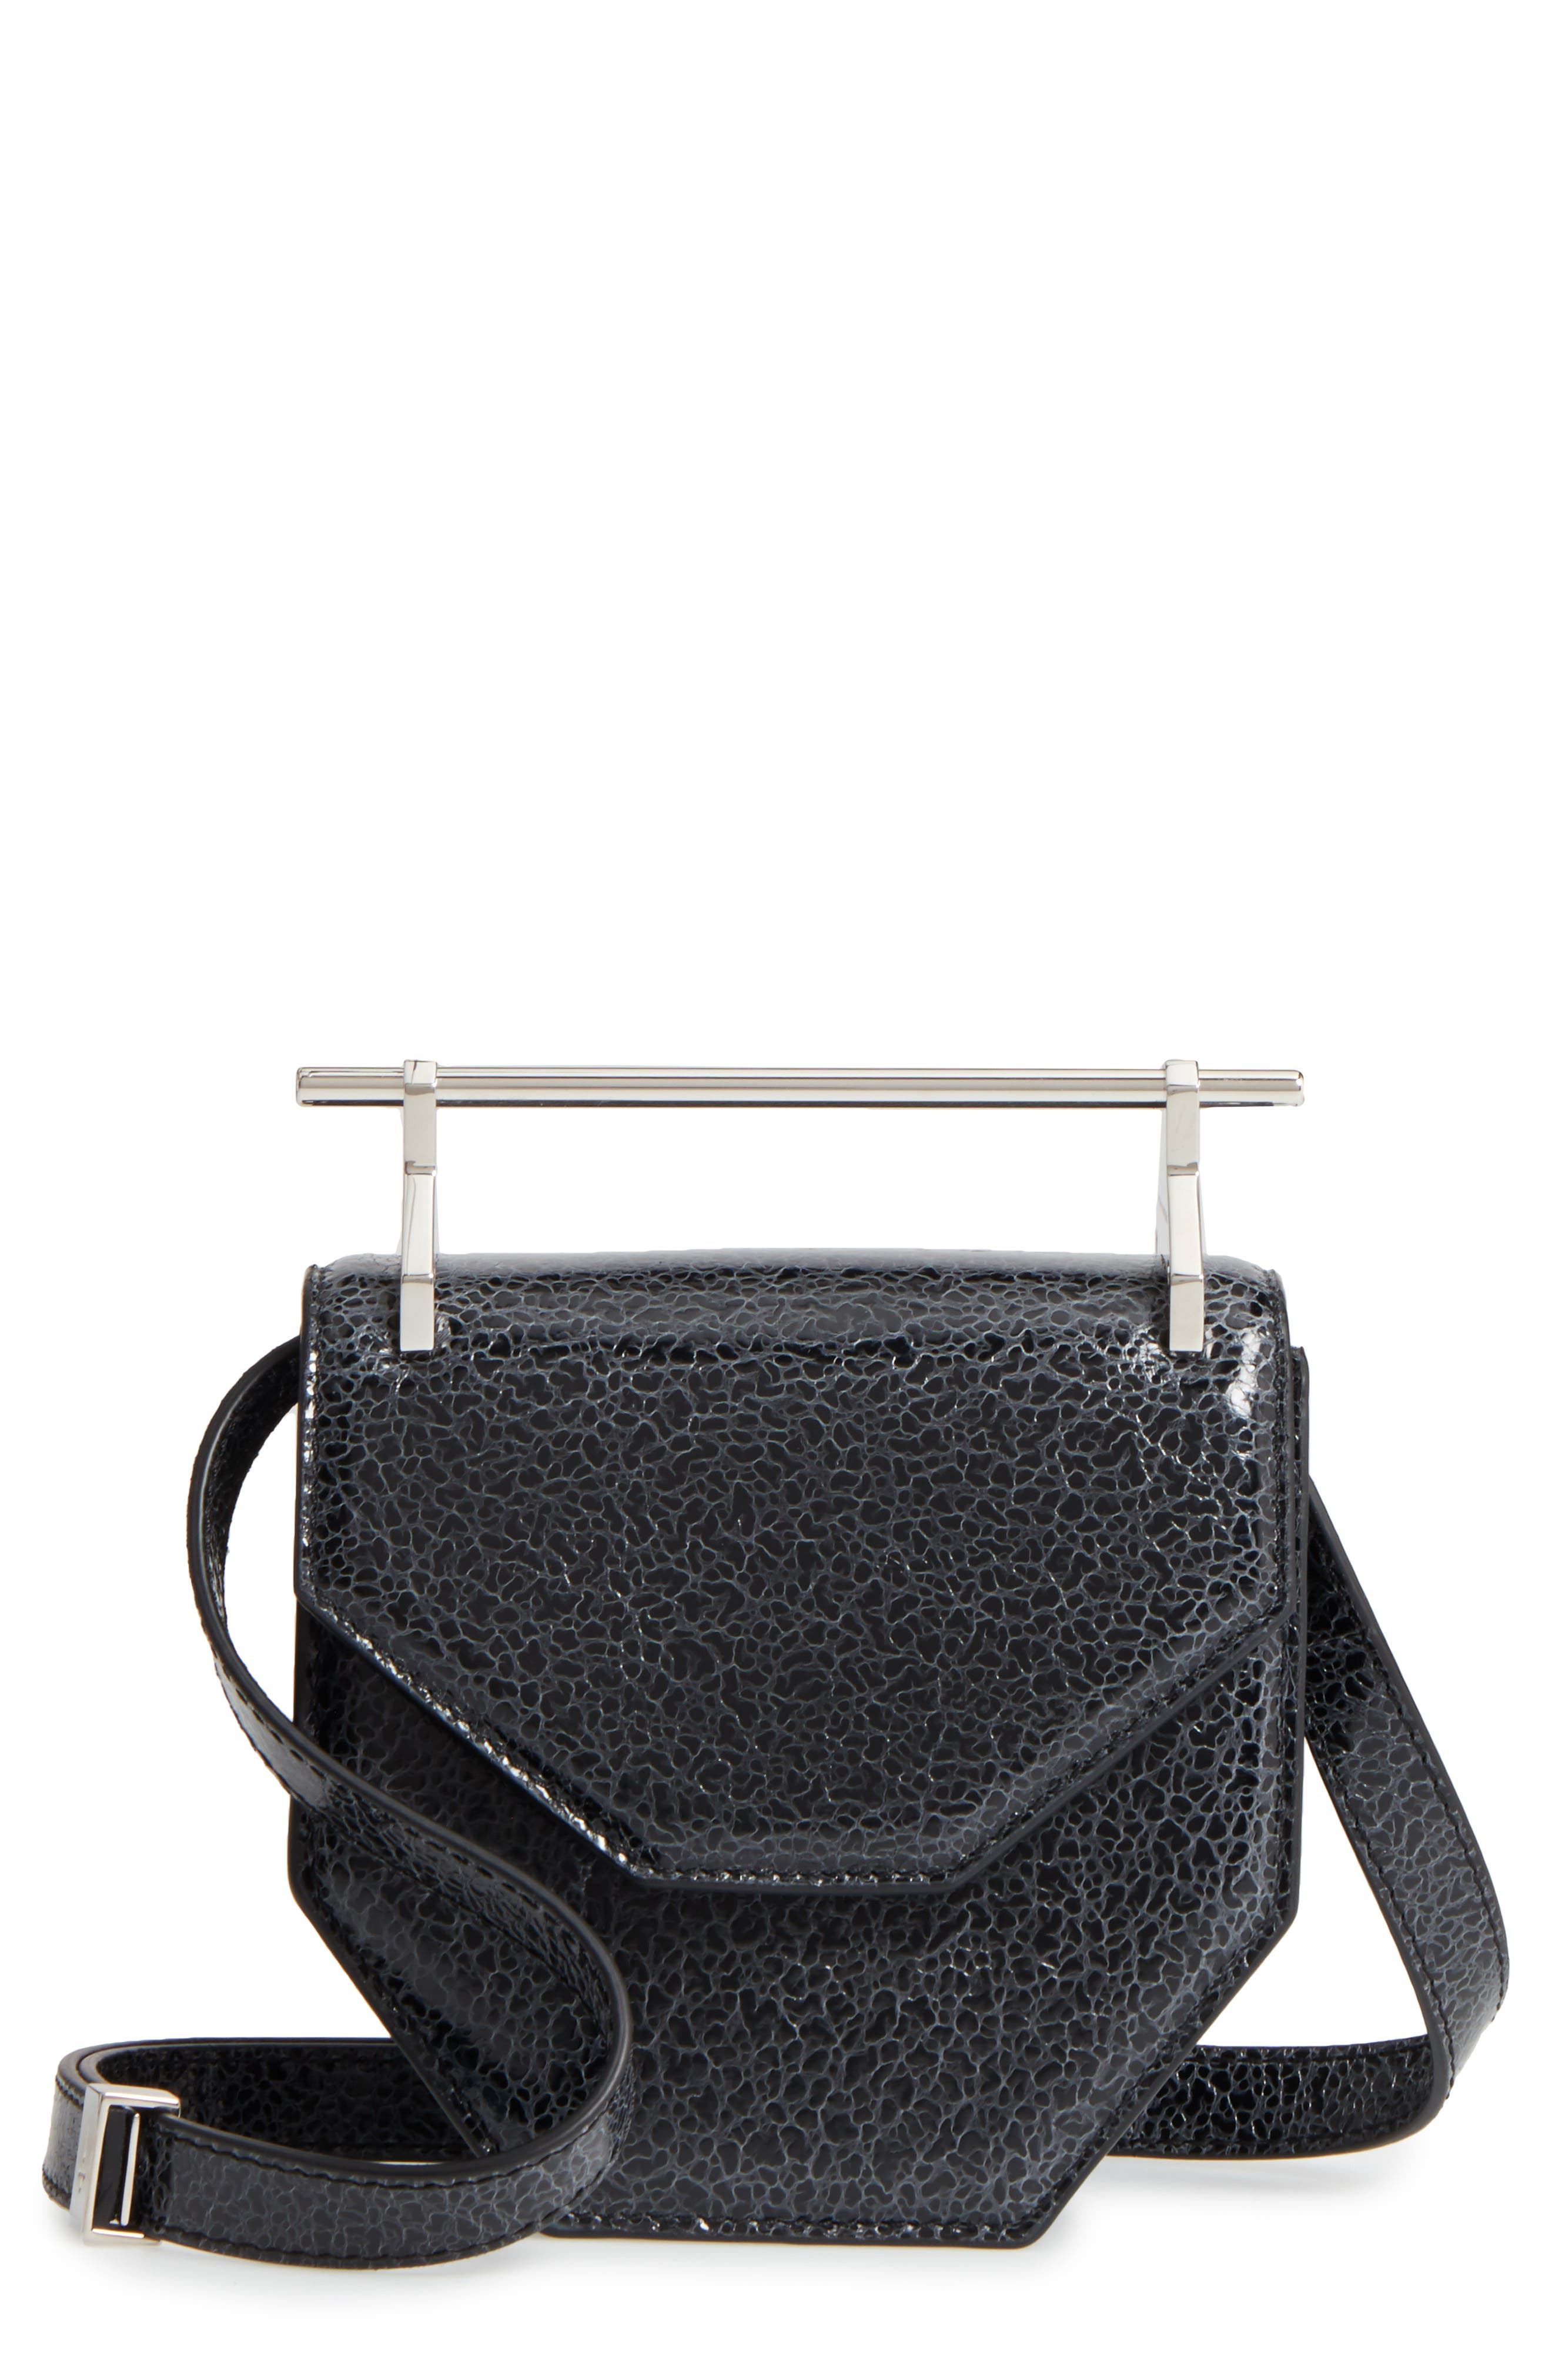 M2Malletier Mini Amor Fati Single Calfskin Leather Shoulder Bag